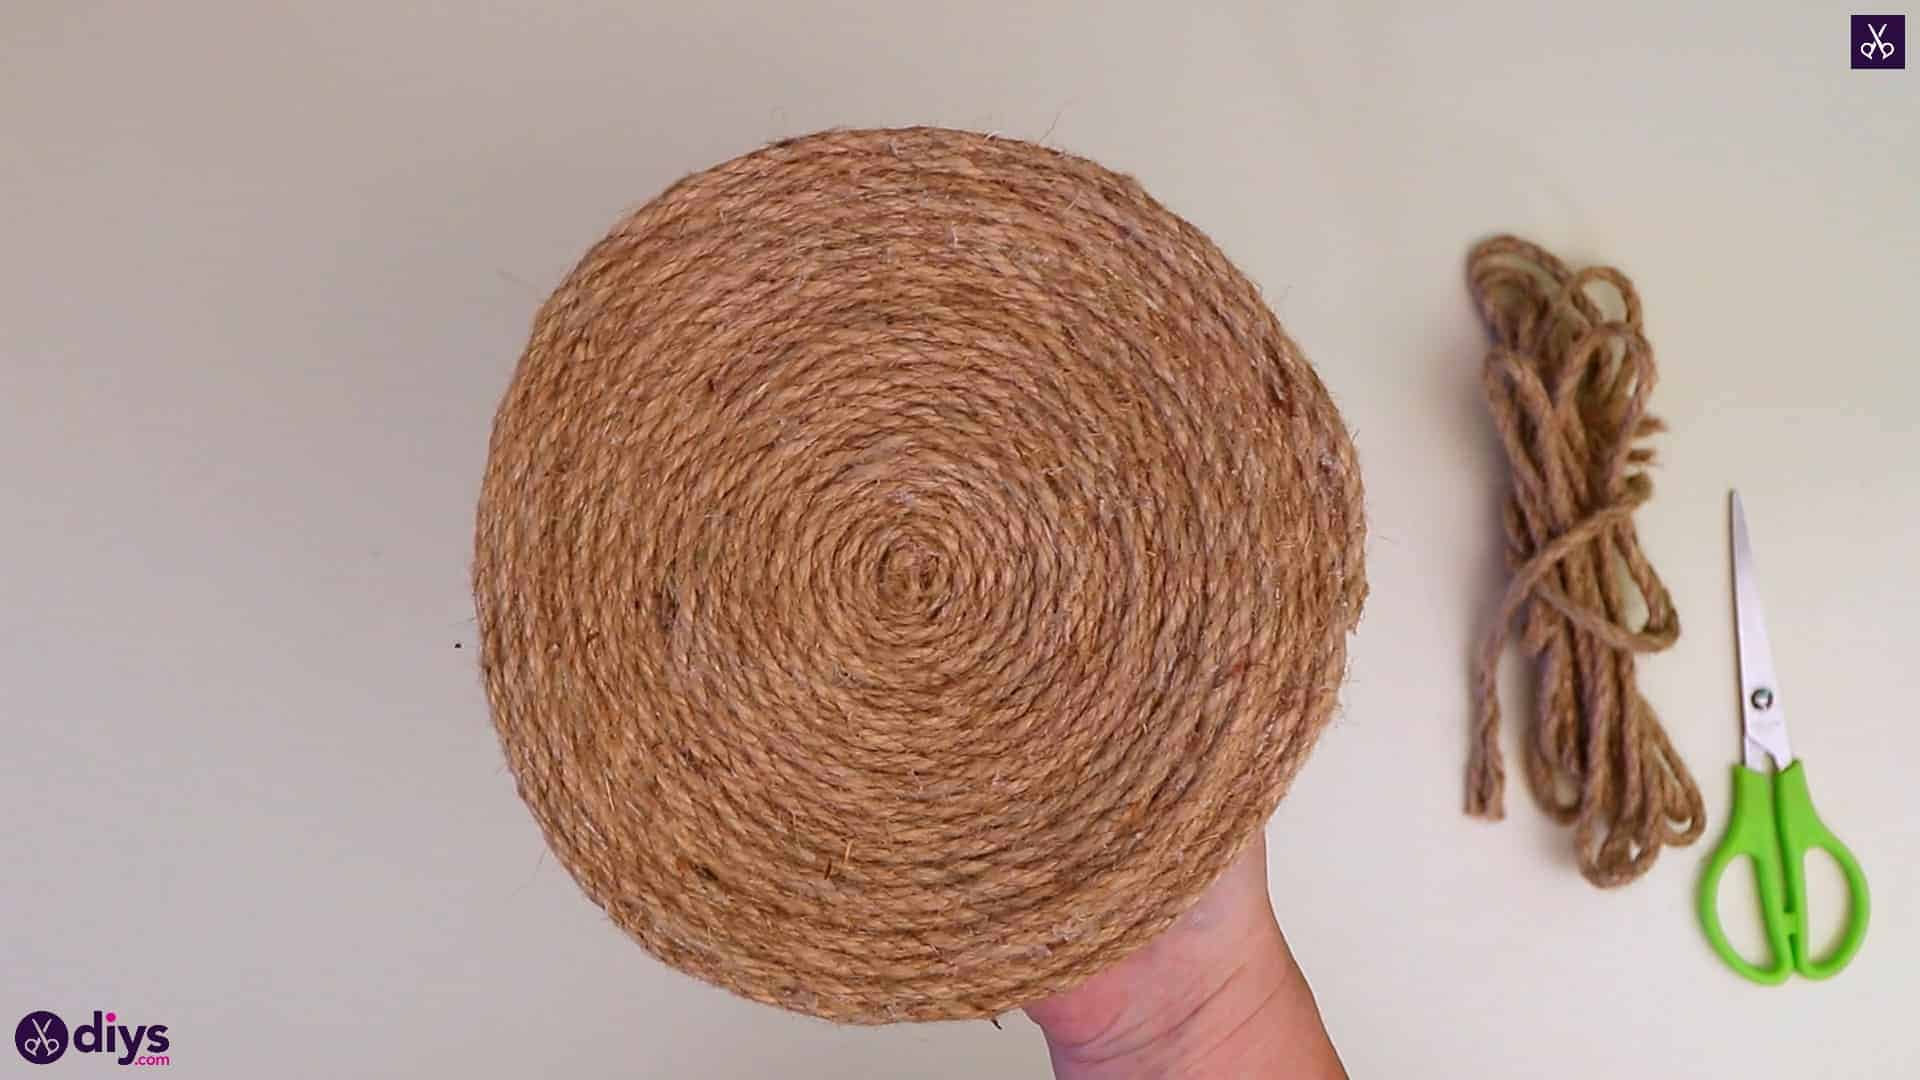 Diy round jute placemat rustic poject